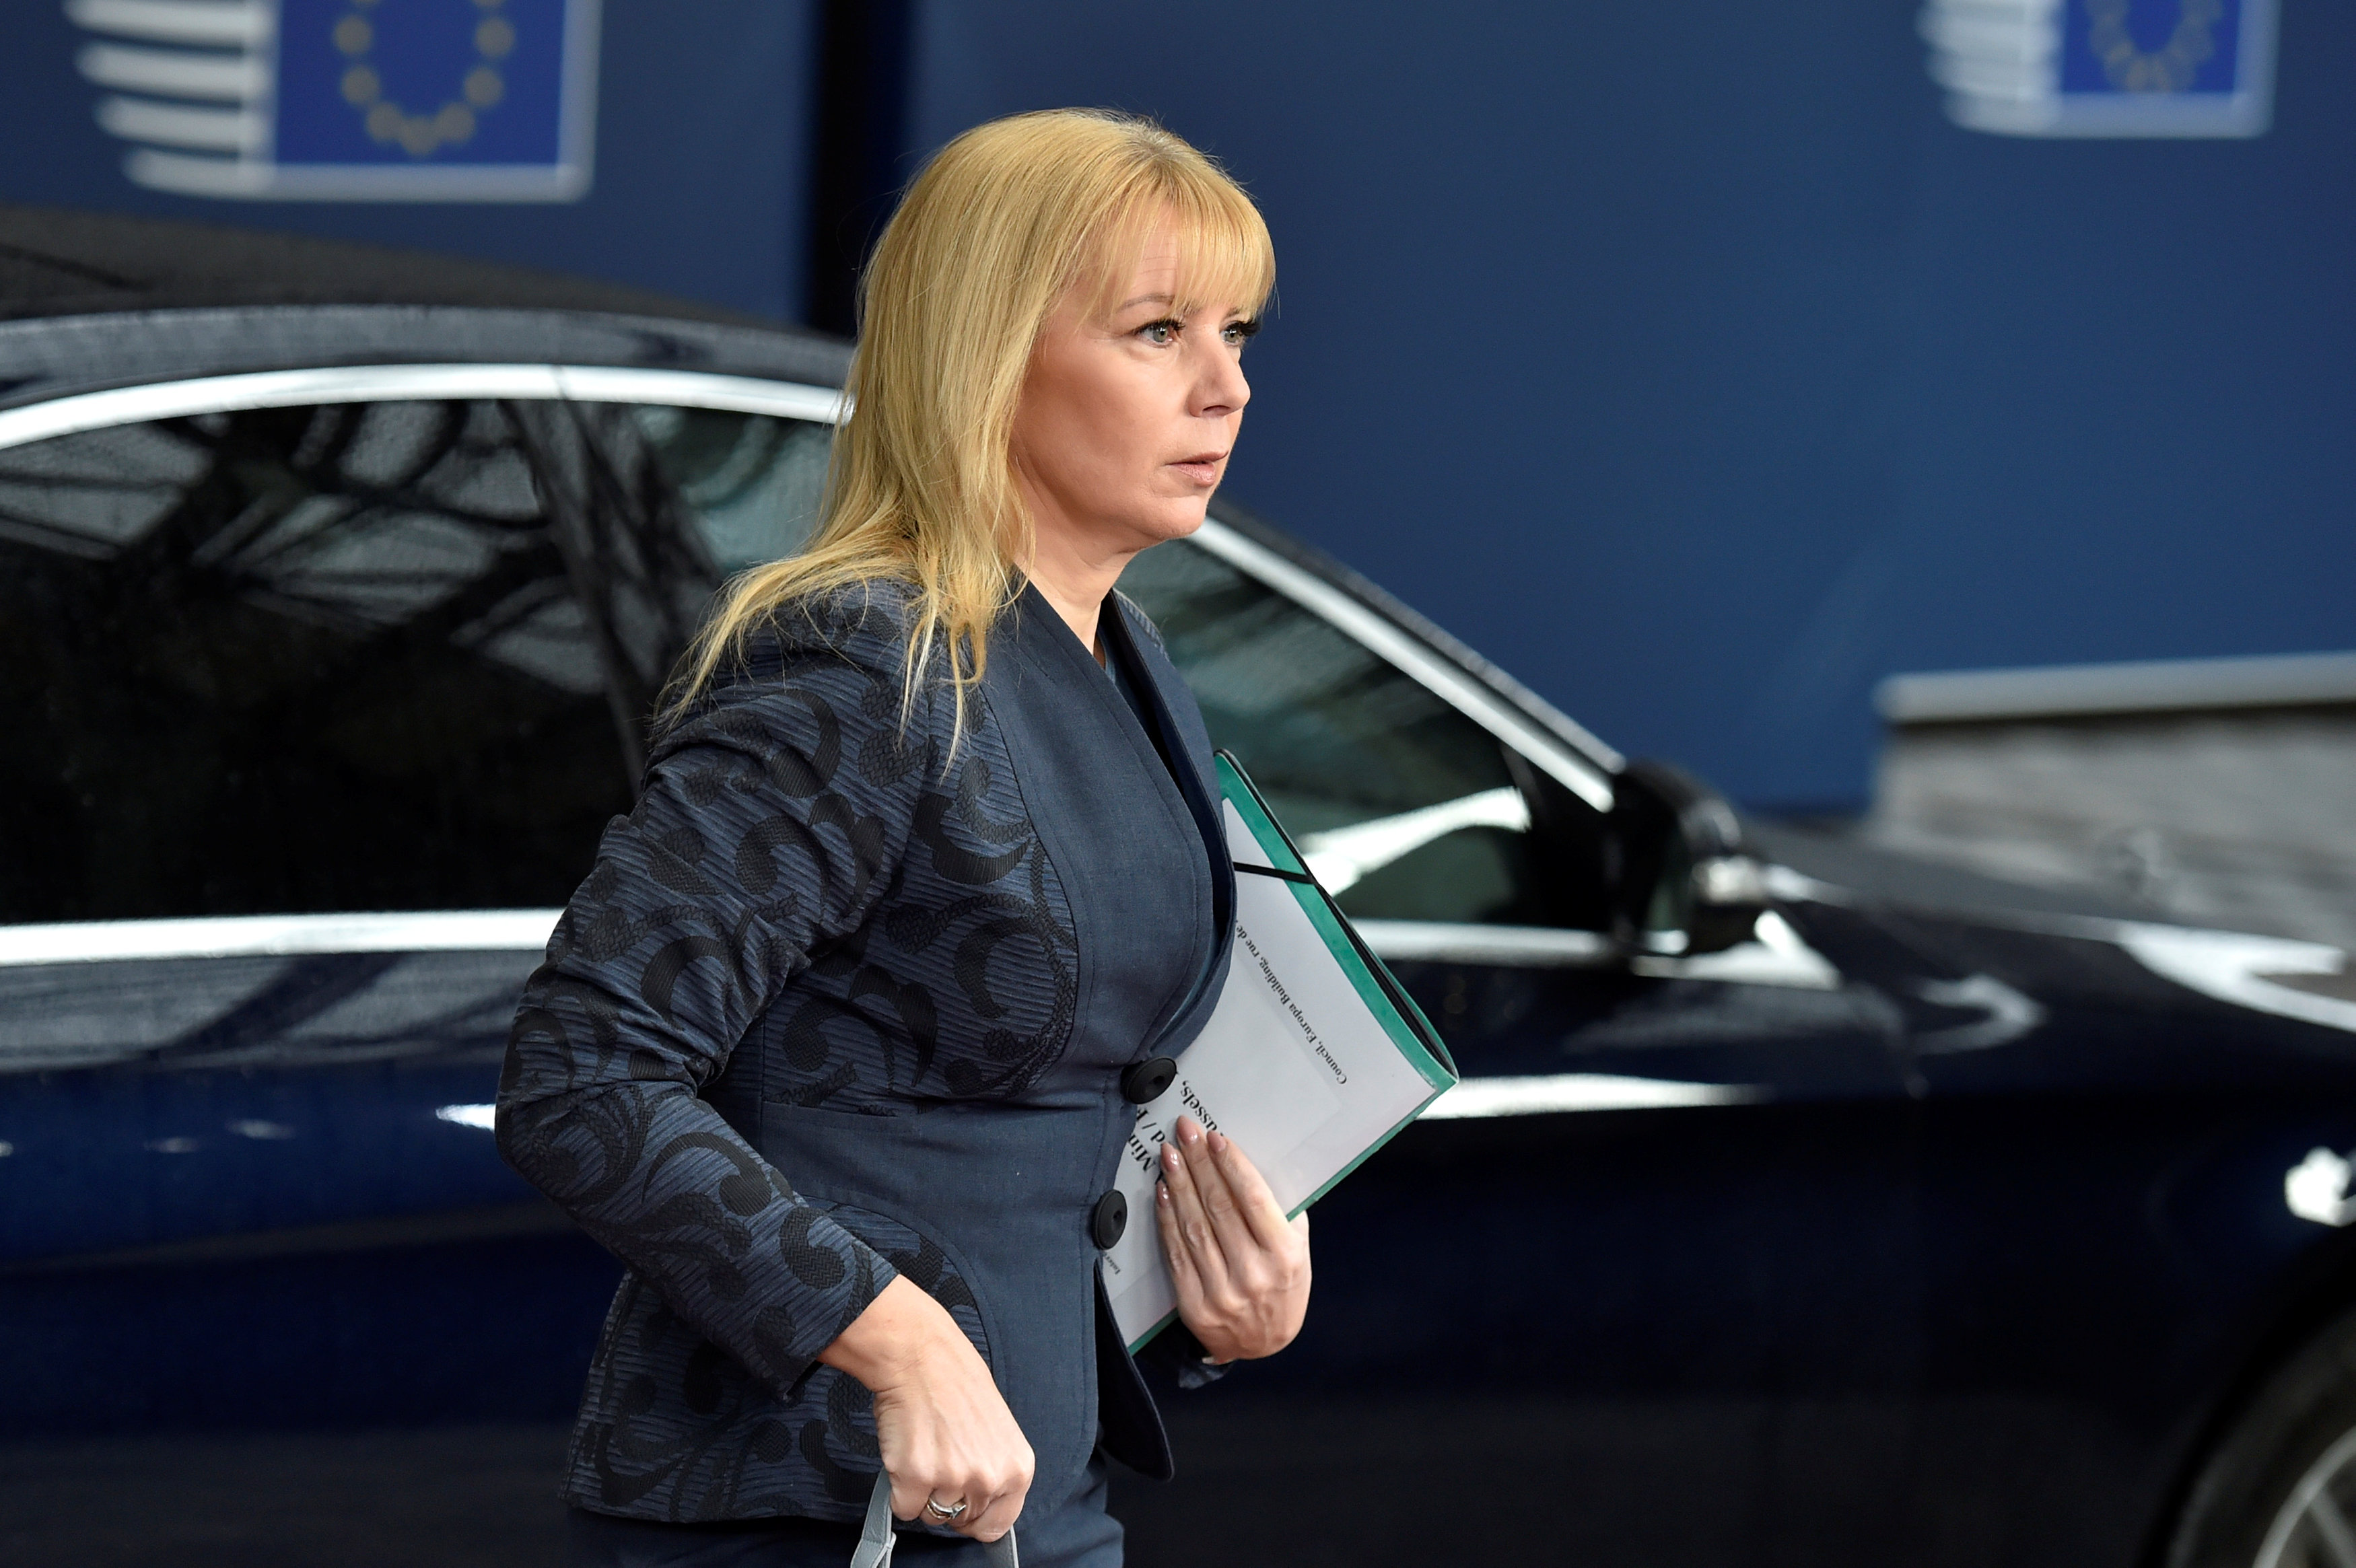 European Commissioner Elzbieta Bienkowska arrives to a meeting of European Union defence ministers at the EU Council in Brussels, Belgium May 18, 2017. REUTERS/Eric Vidal